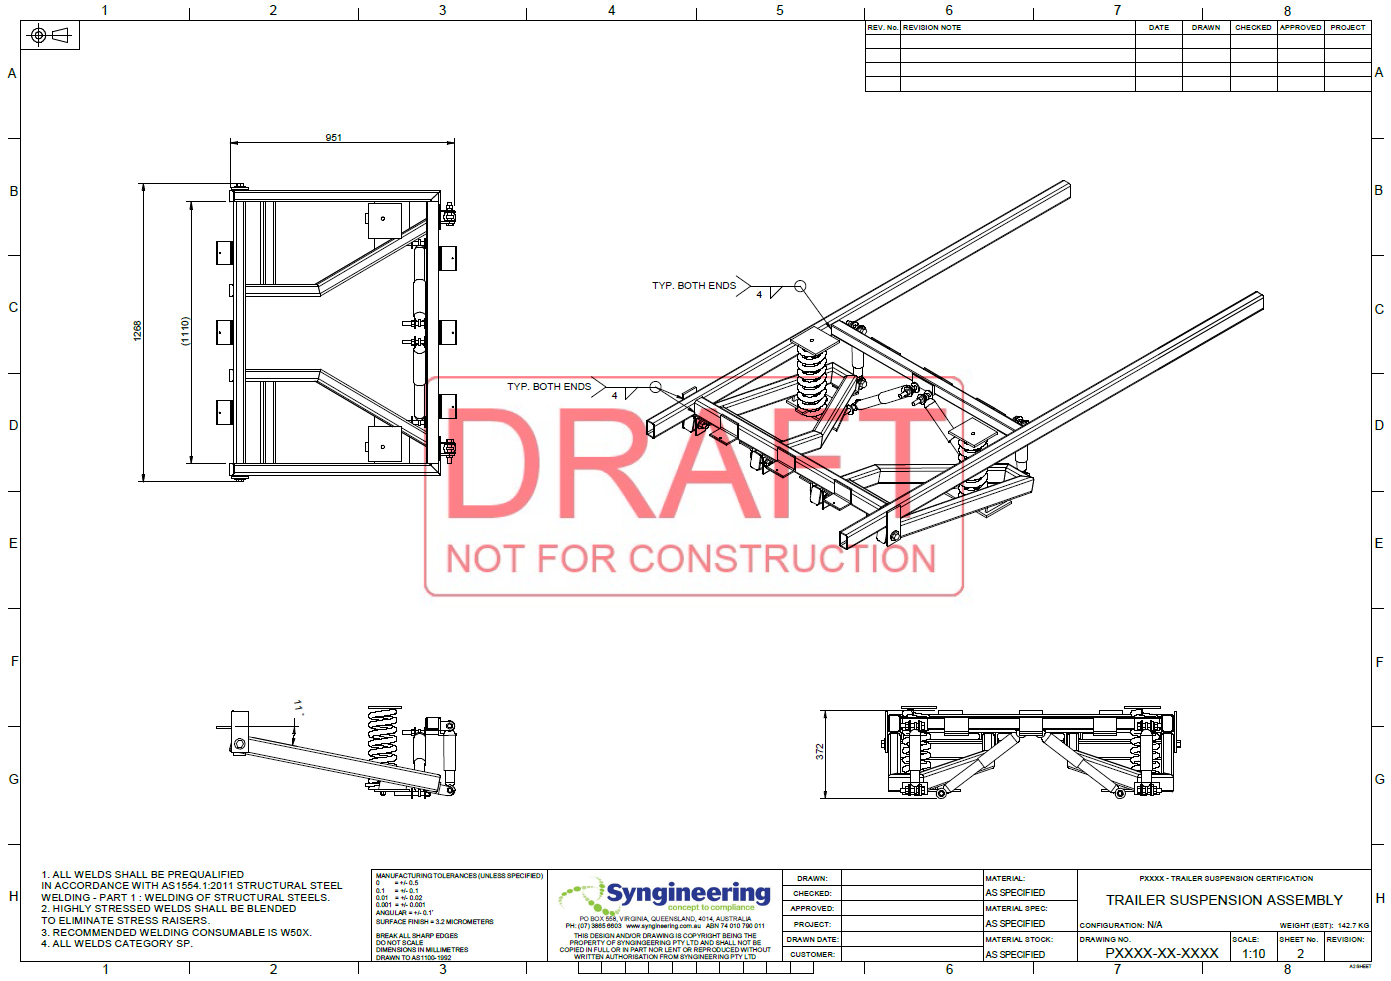 Mechanical design syngineering projects brisbane engineering project brisbane engineers certified to australian standards cpeng custom engineering solutions engineer drawings mechanical malvernweather Choice Image